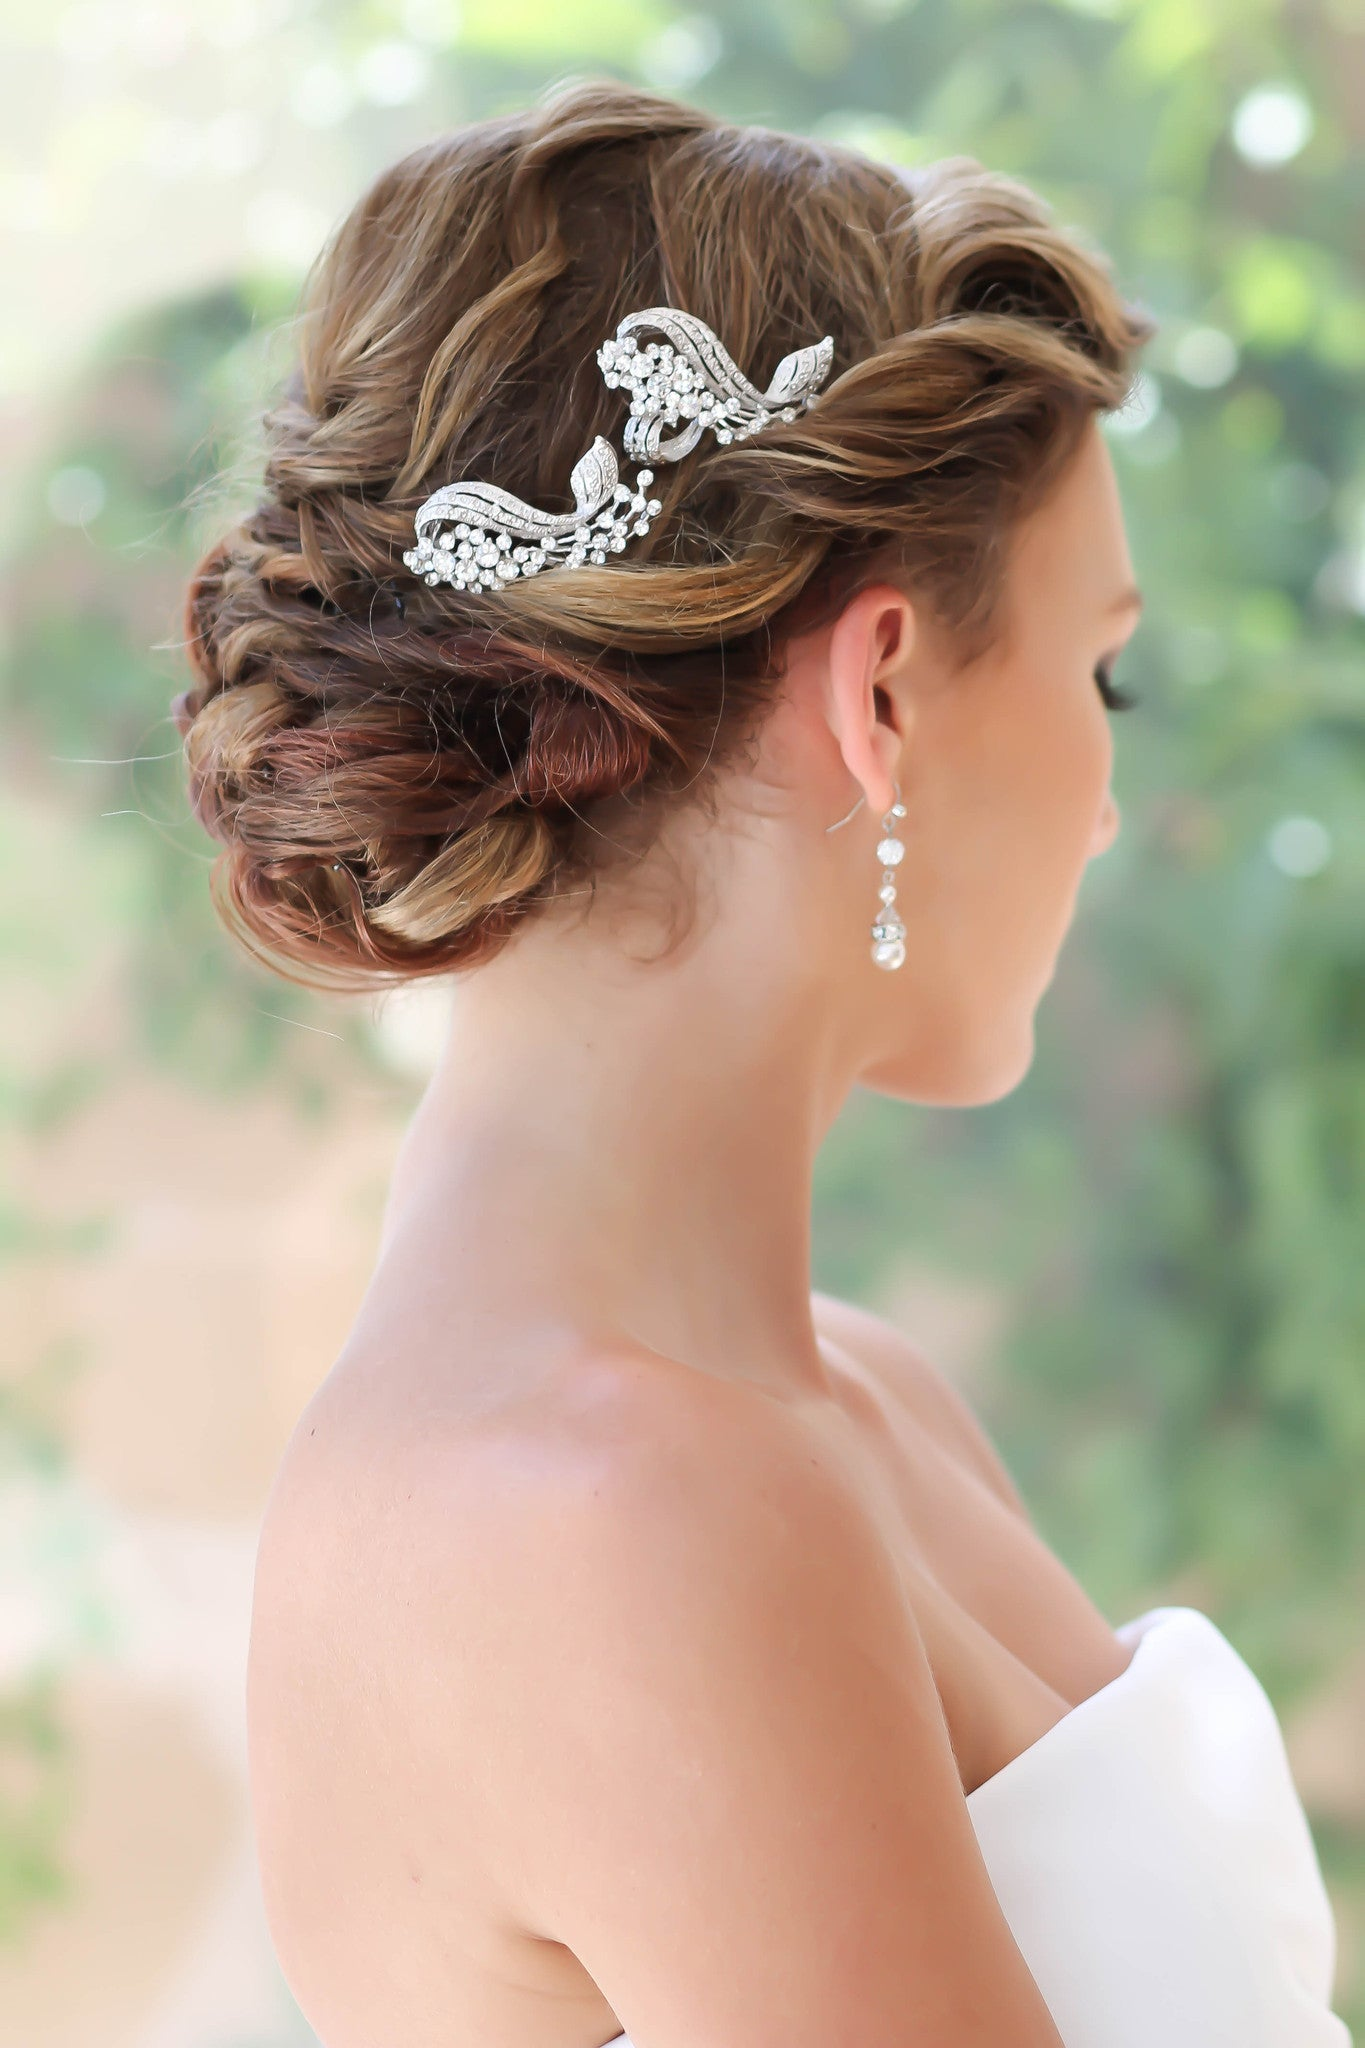 REINE Headpiece